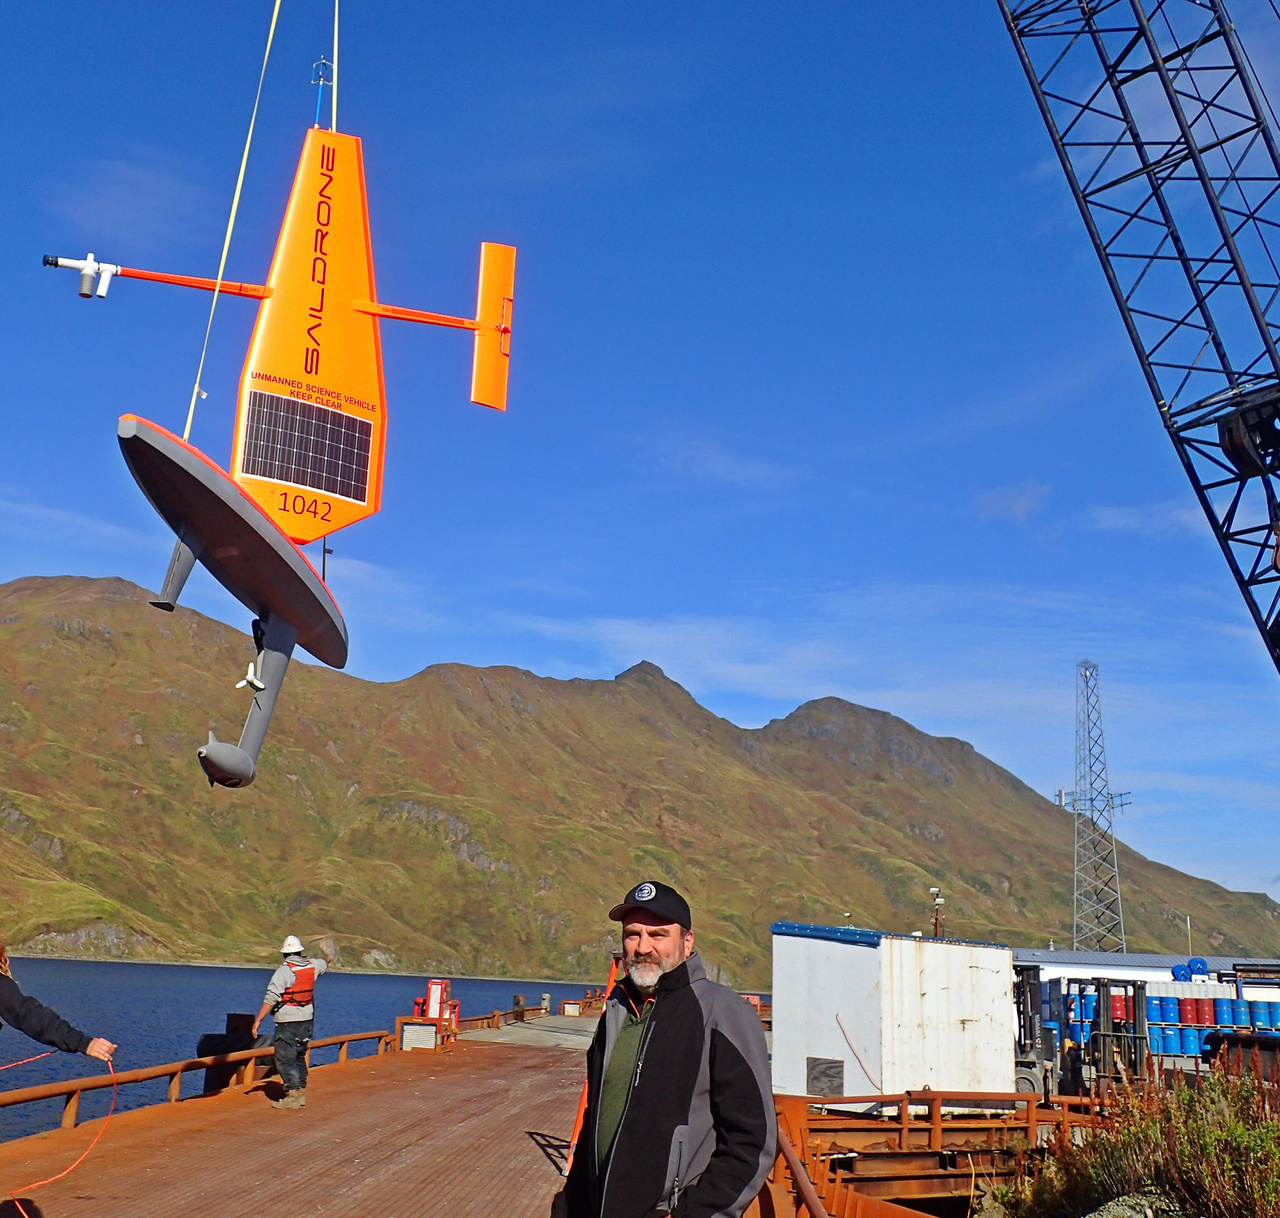 Scott Goodman (Bering Sea Fisheries Research Foundation) watching as a Saildrone is launched in Dutch Harbor, Alaska.